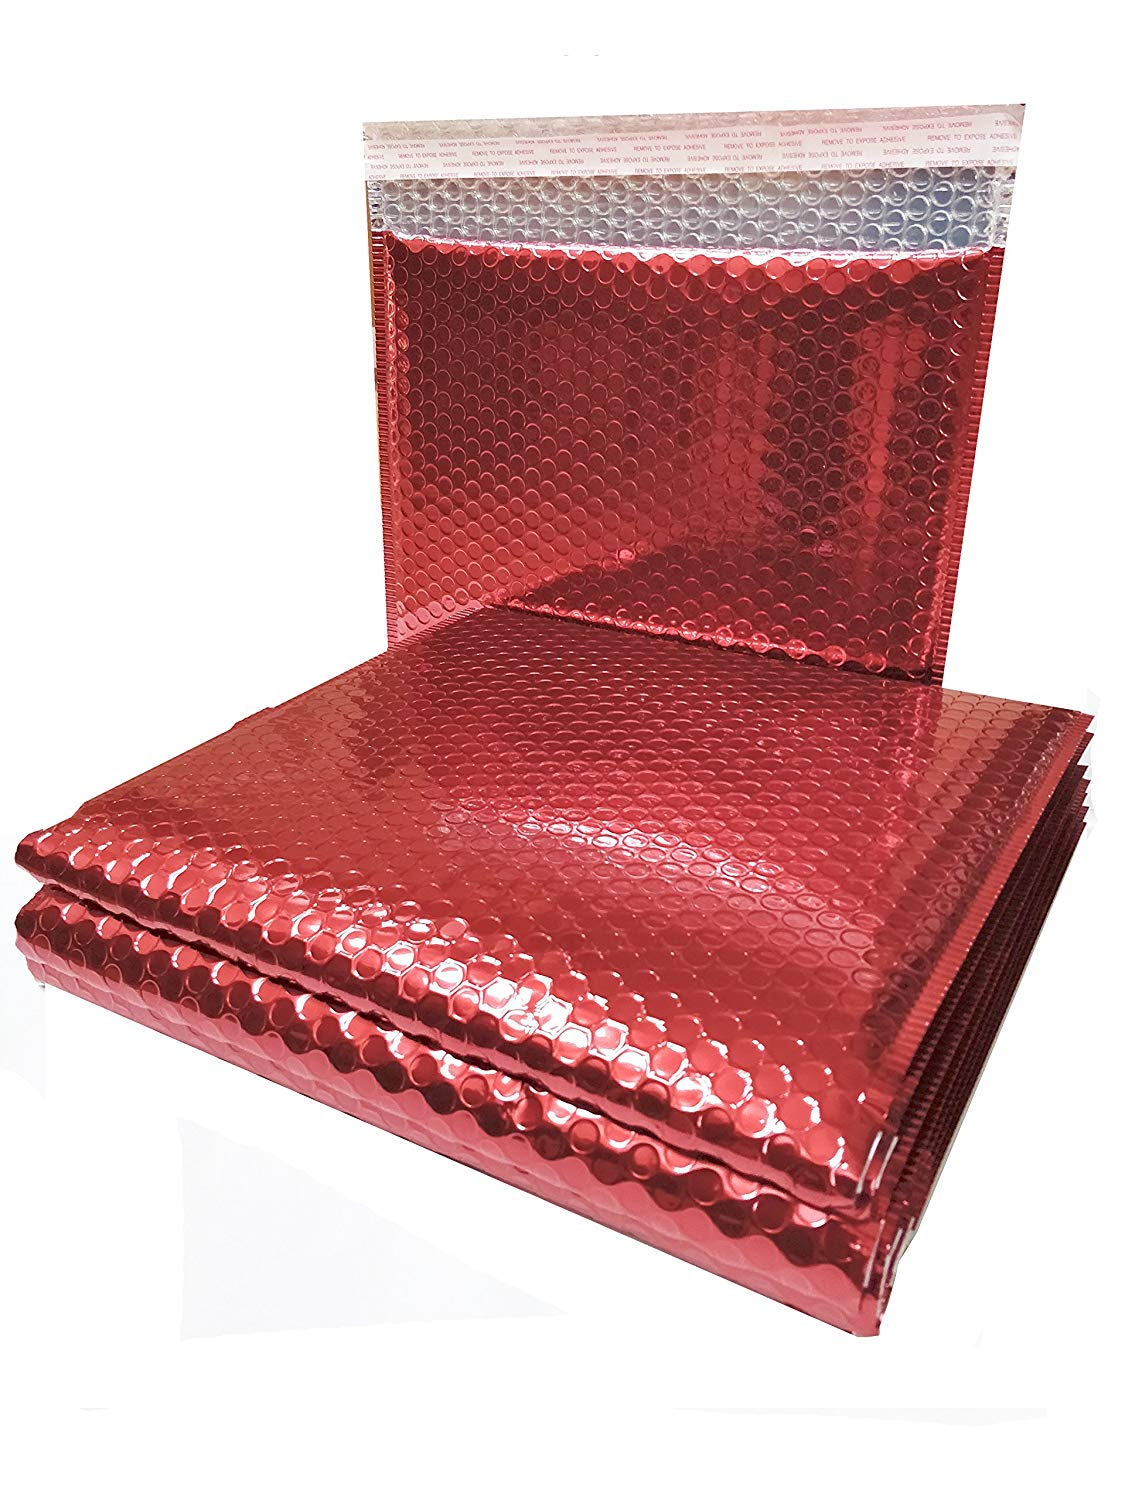 20 Pack Metallic Bubble Mailers 7 x 6.75. Red Padded Envelopes 7 x 6 3/4. Glamour Bubble Mailers Peel & Self Sealing Cushion Packaging Mailers. Poly Mailing Packing Wrapping Shipping Envelopes.